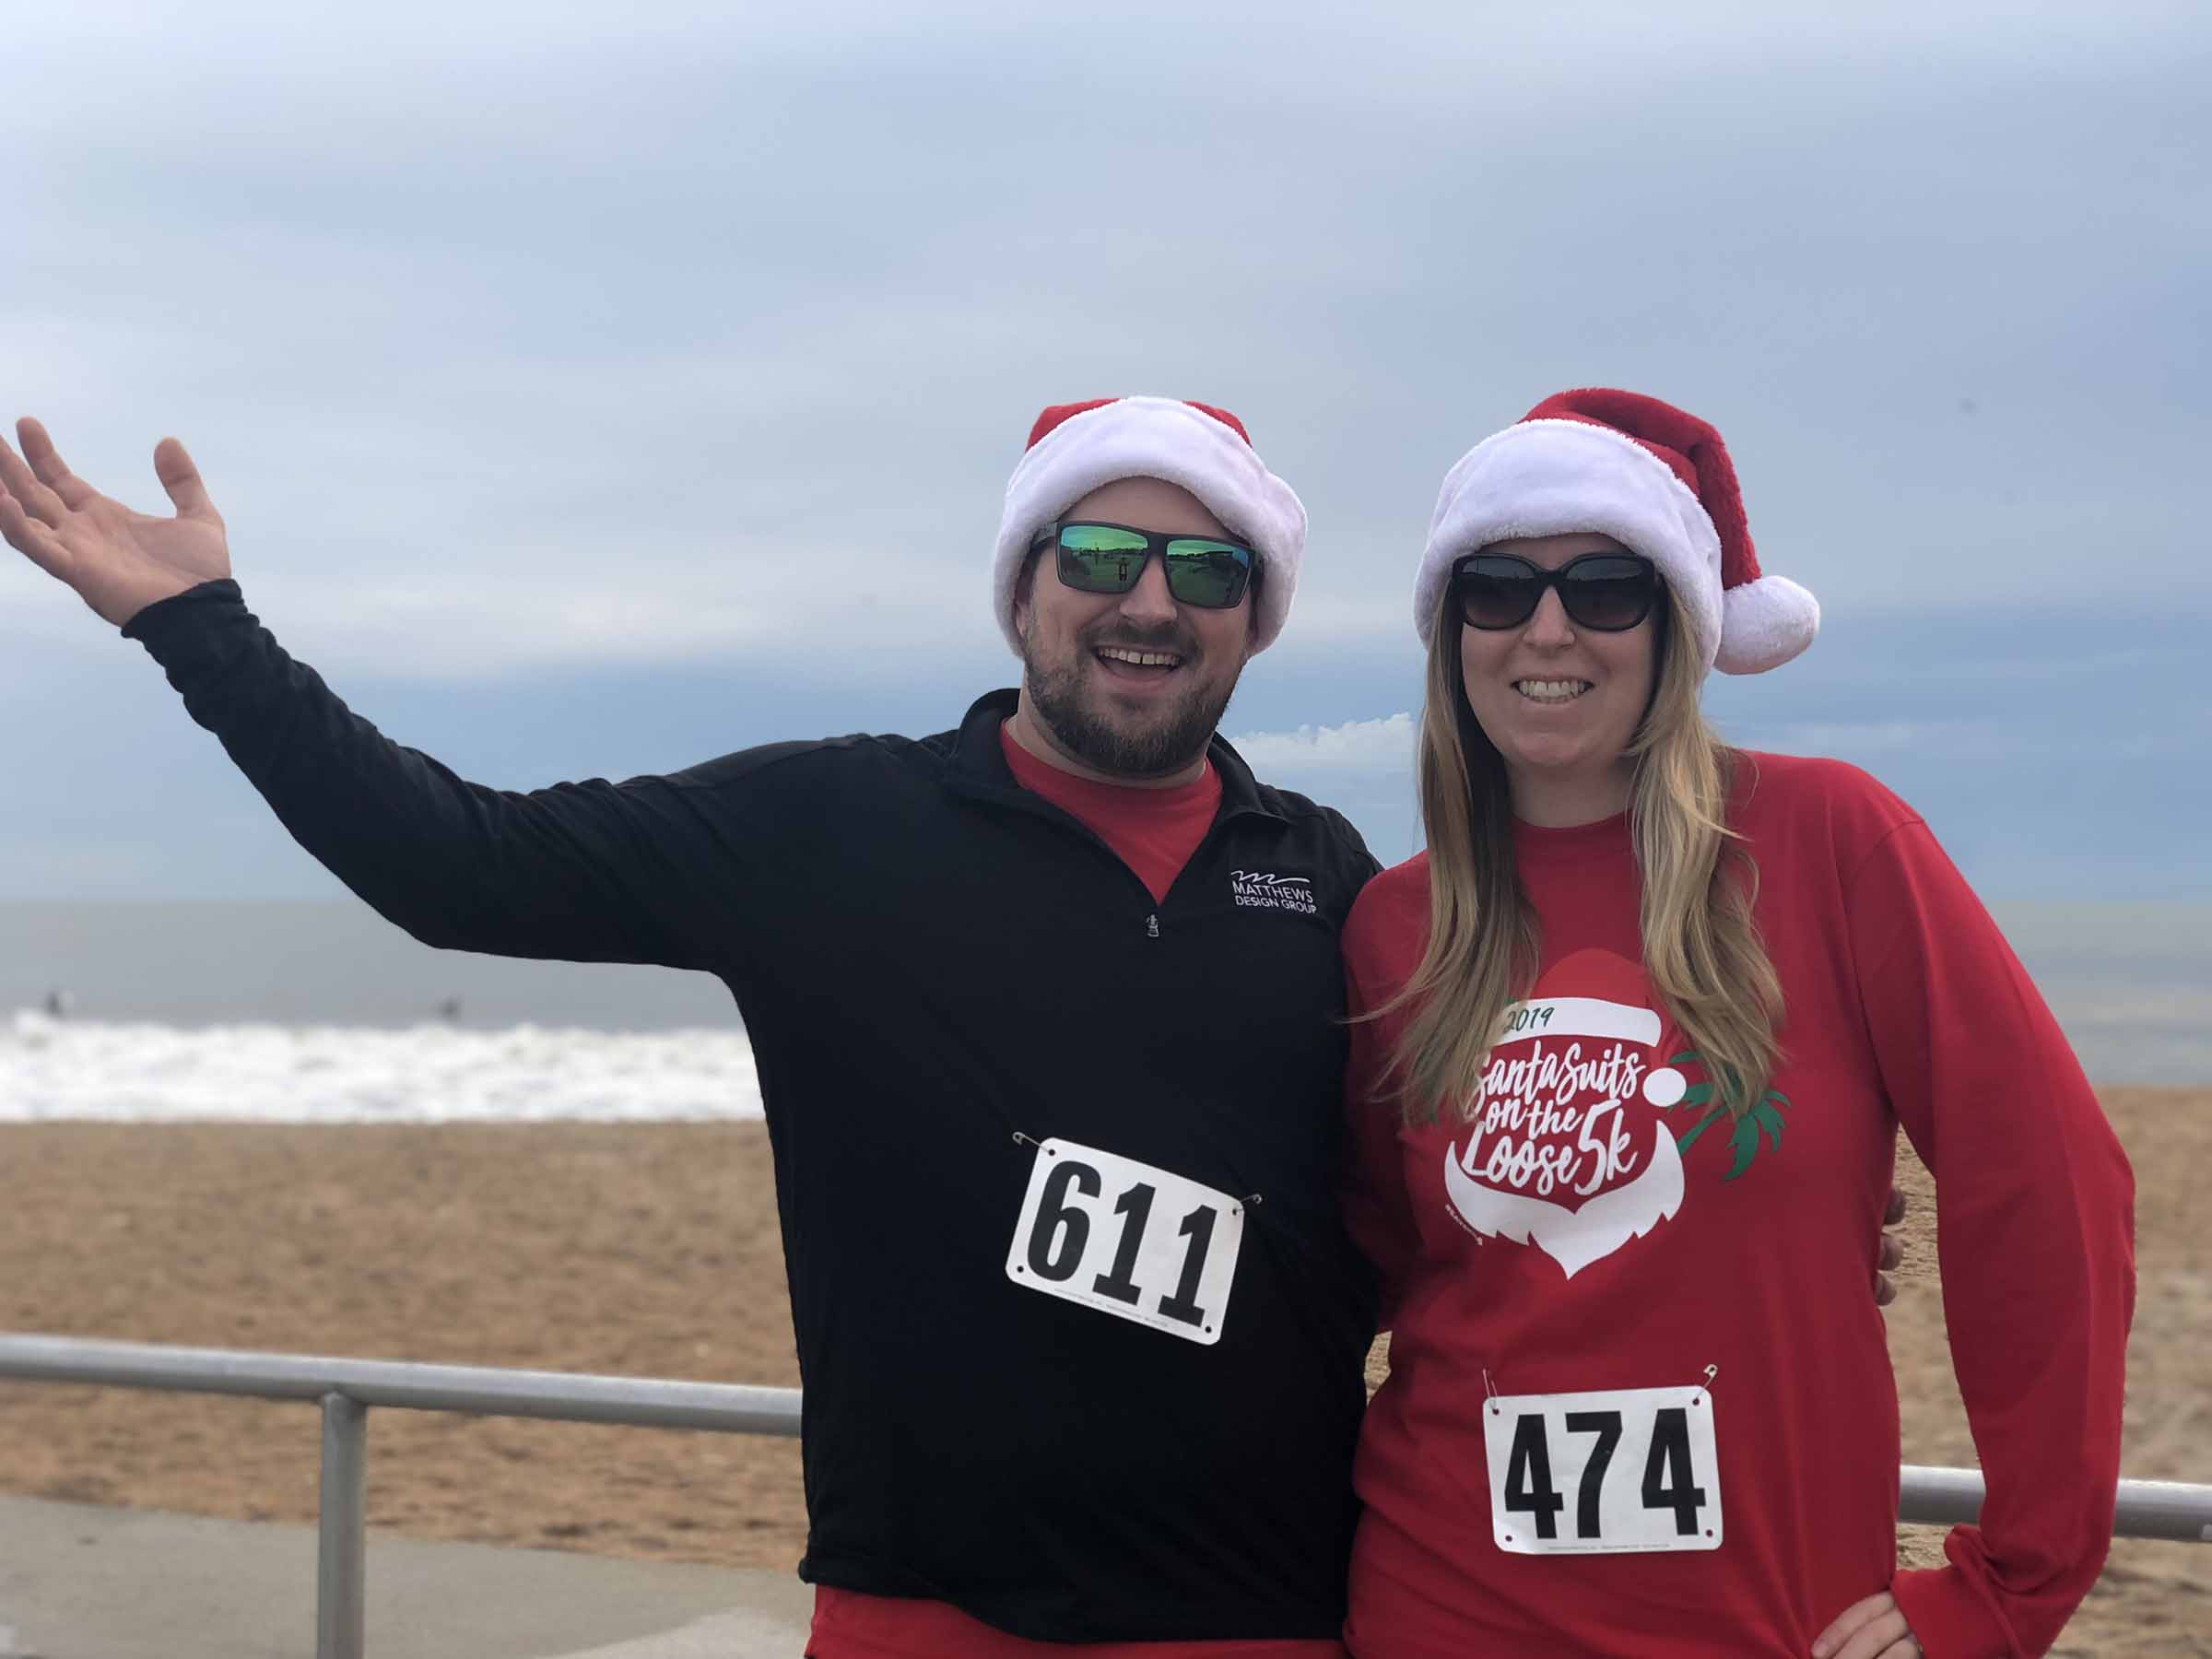 Two team members in front of the beach smiling during the Santa Run 5k.